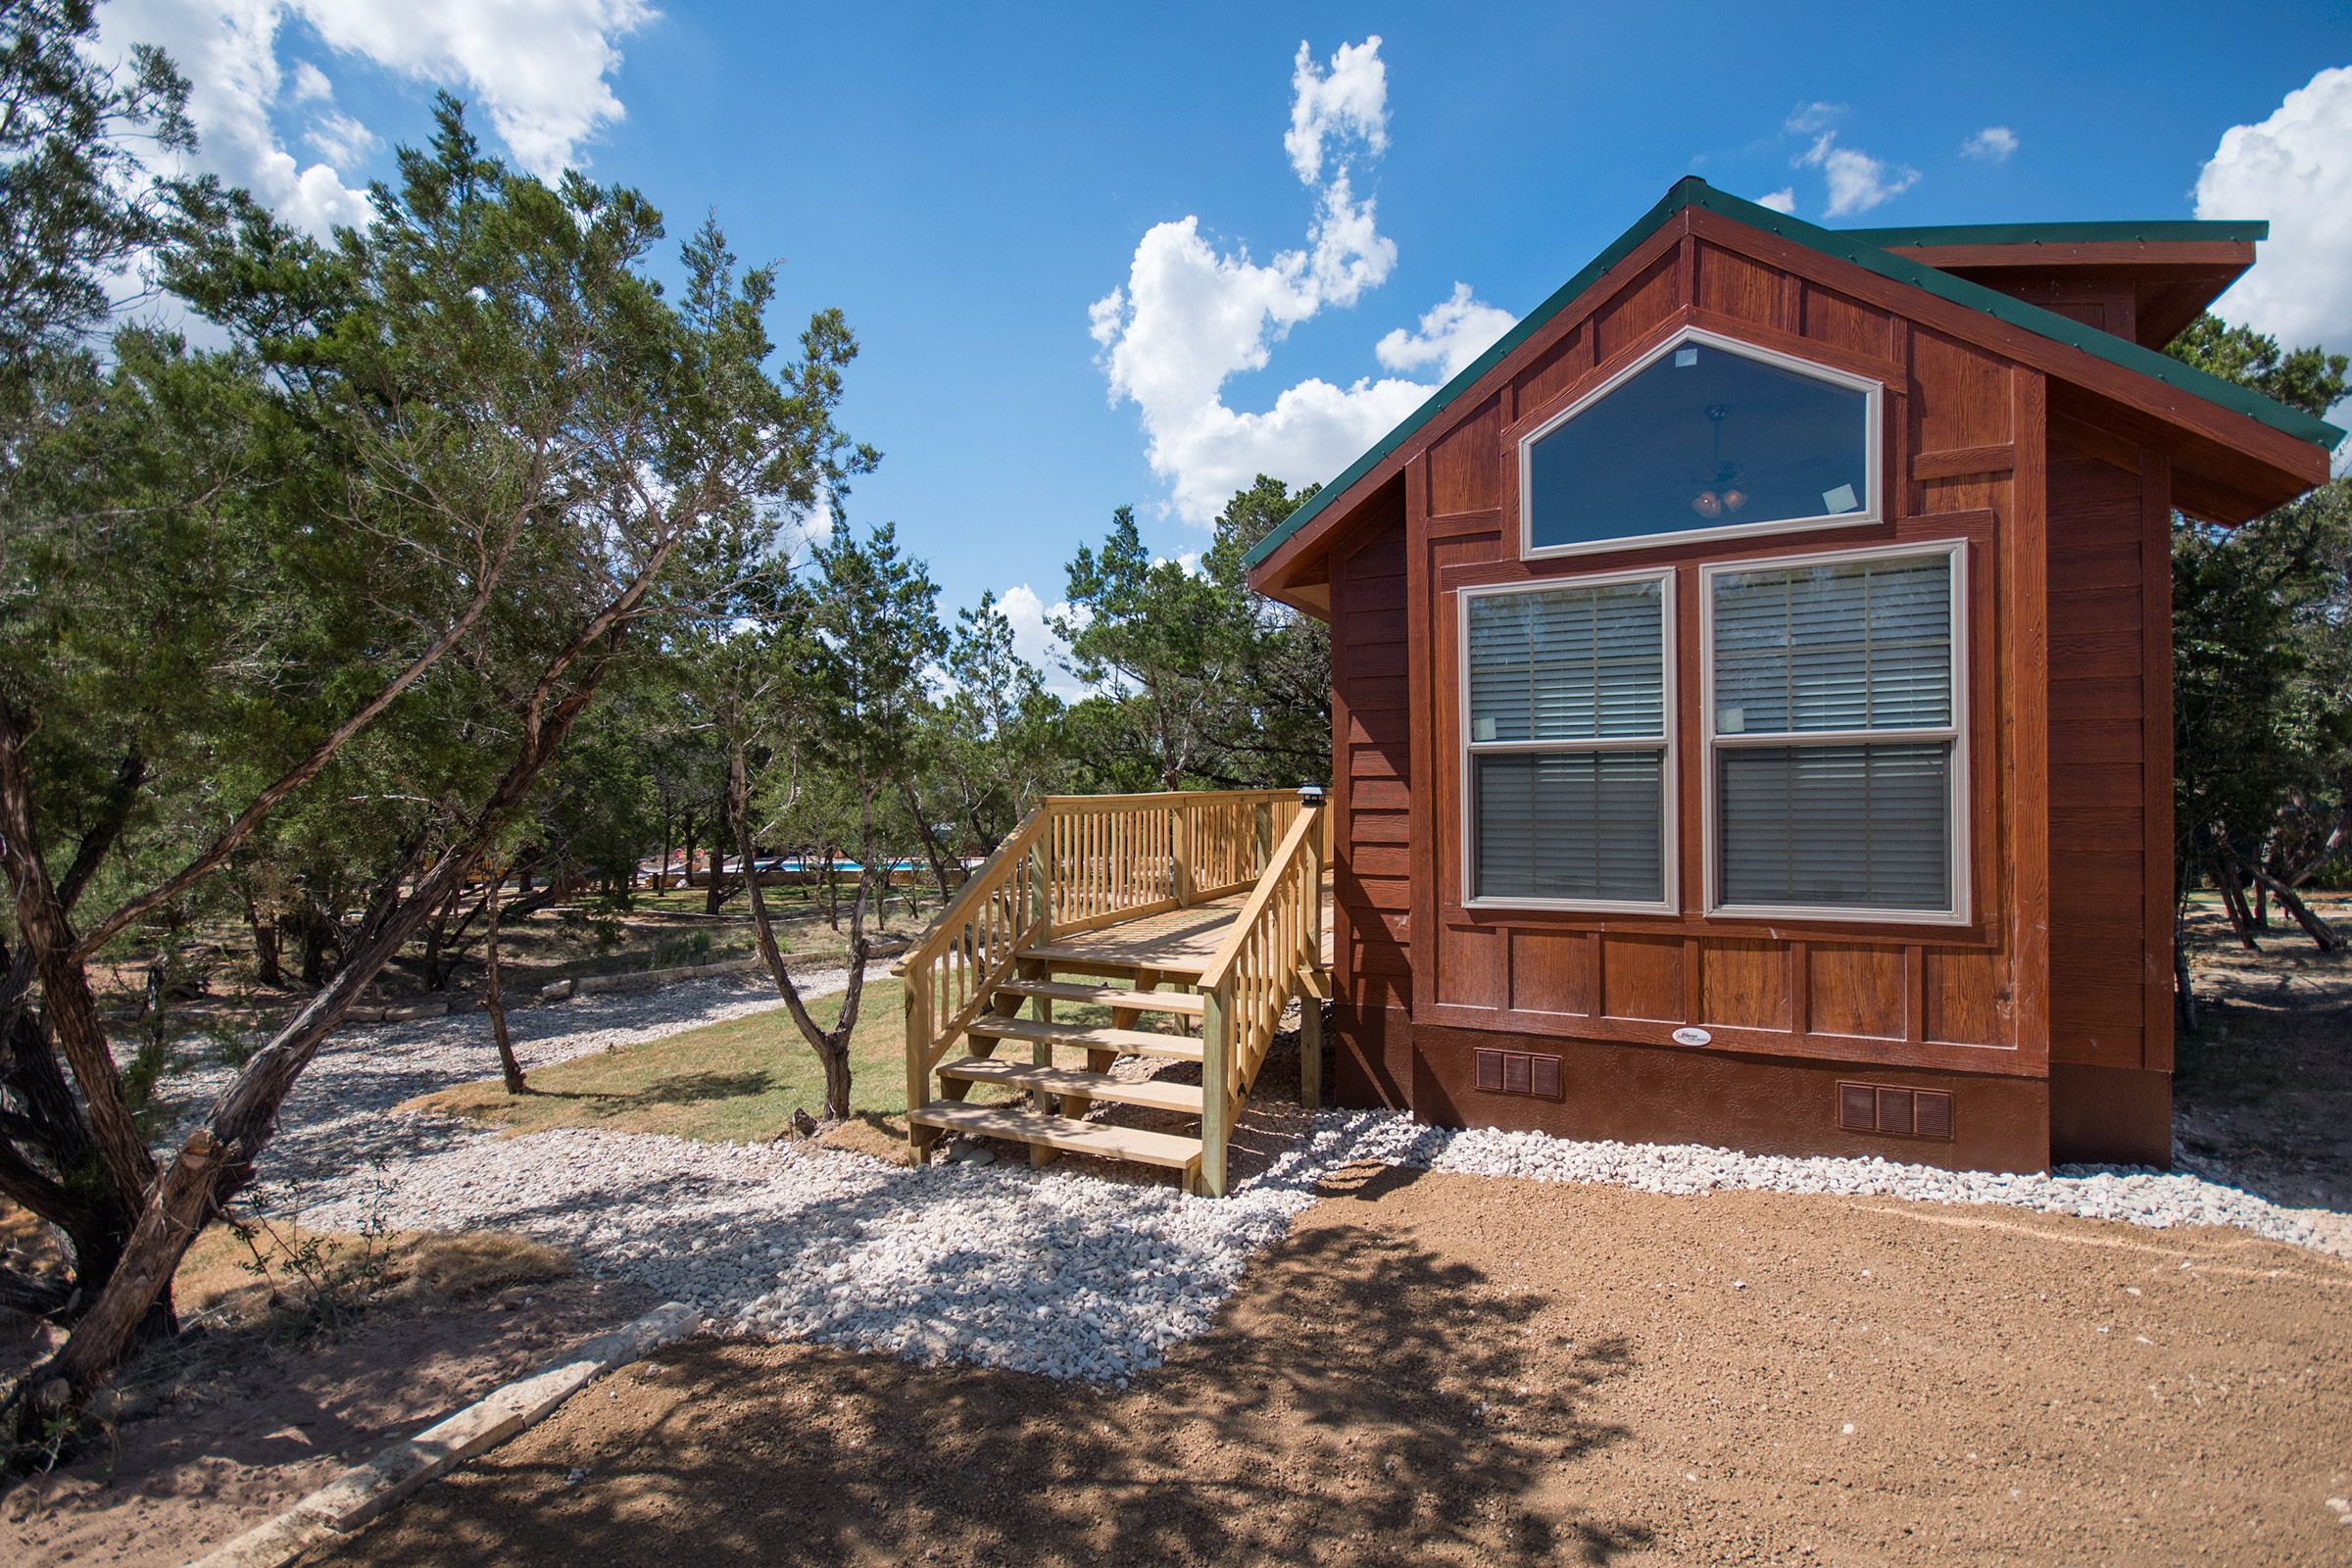 sheds the accesskeyid disposition storage shed tx company austin alloworigin texas cabins and in